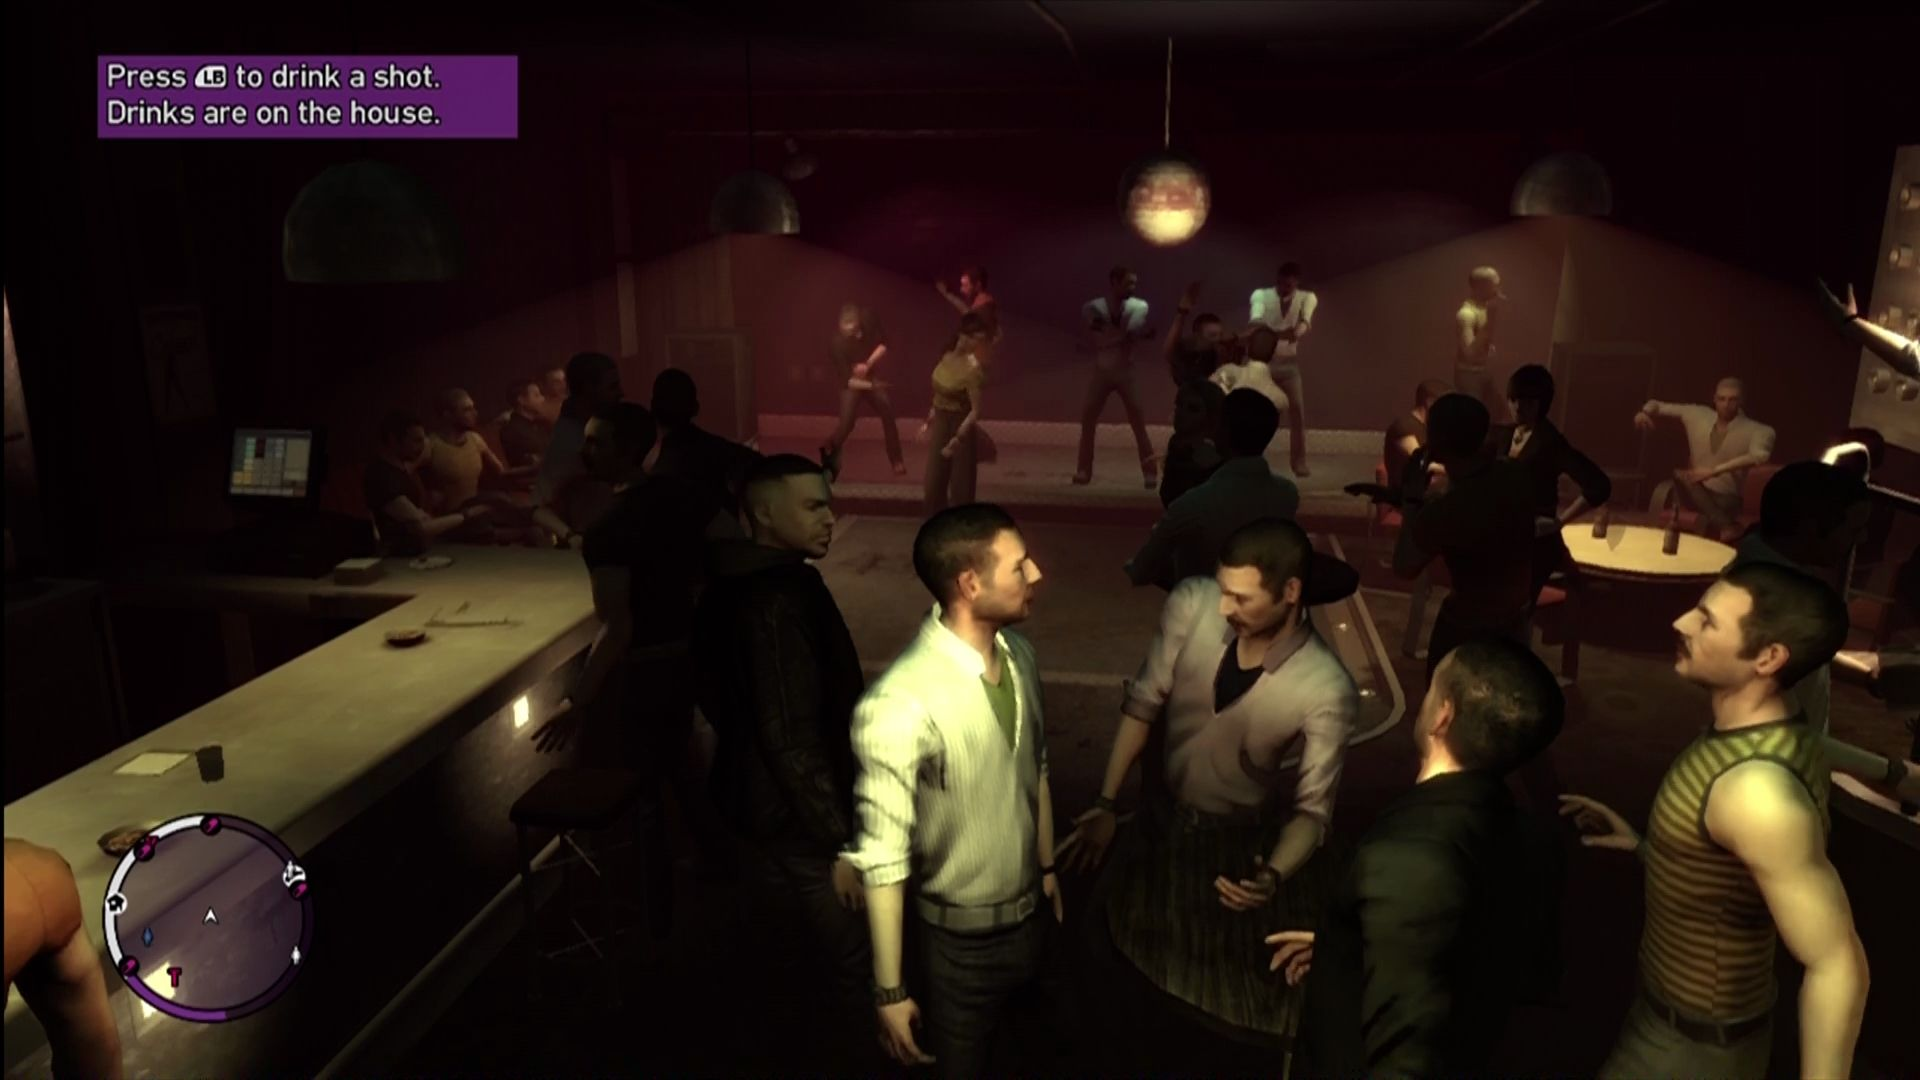 Grand Theft Auto: The Ballad of Gay Tony Xbox 360 Tony's second club, where the men are queens and the drinks are free!